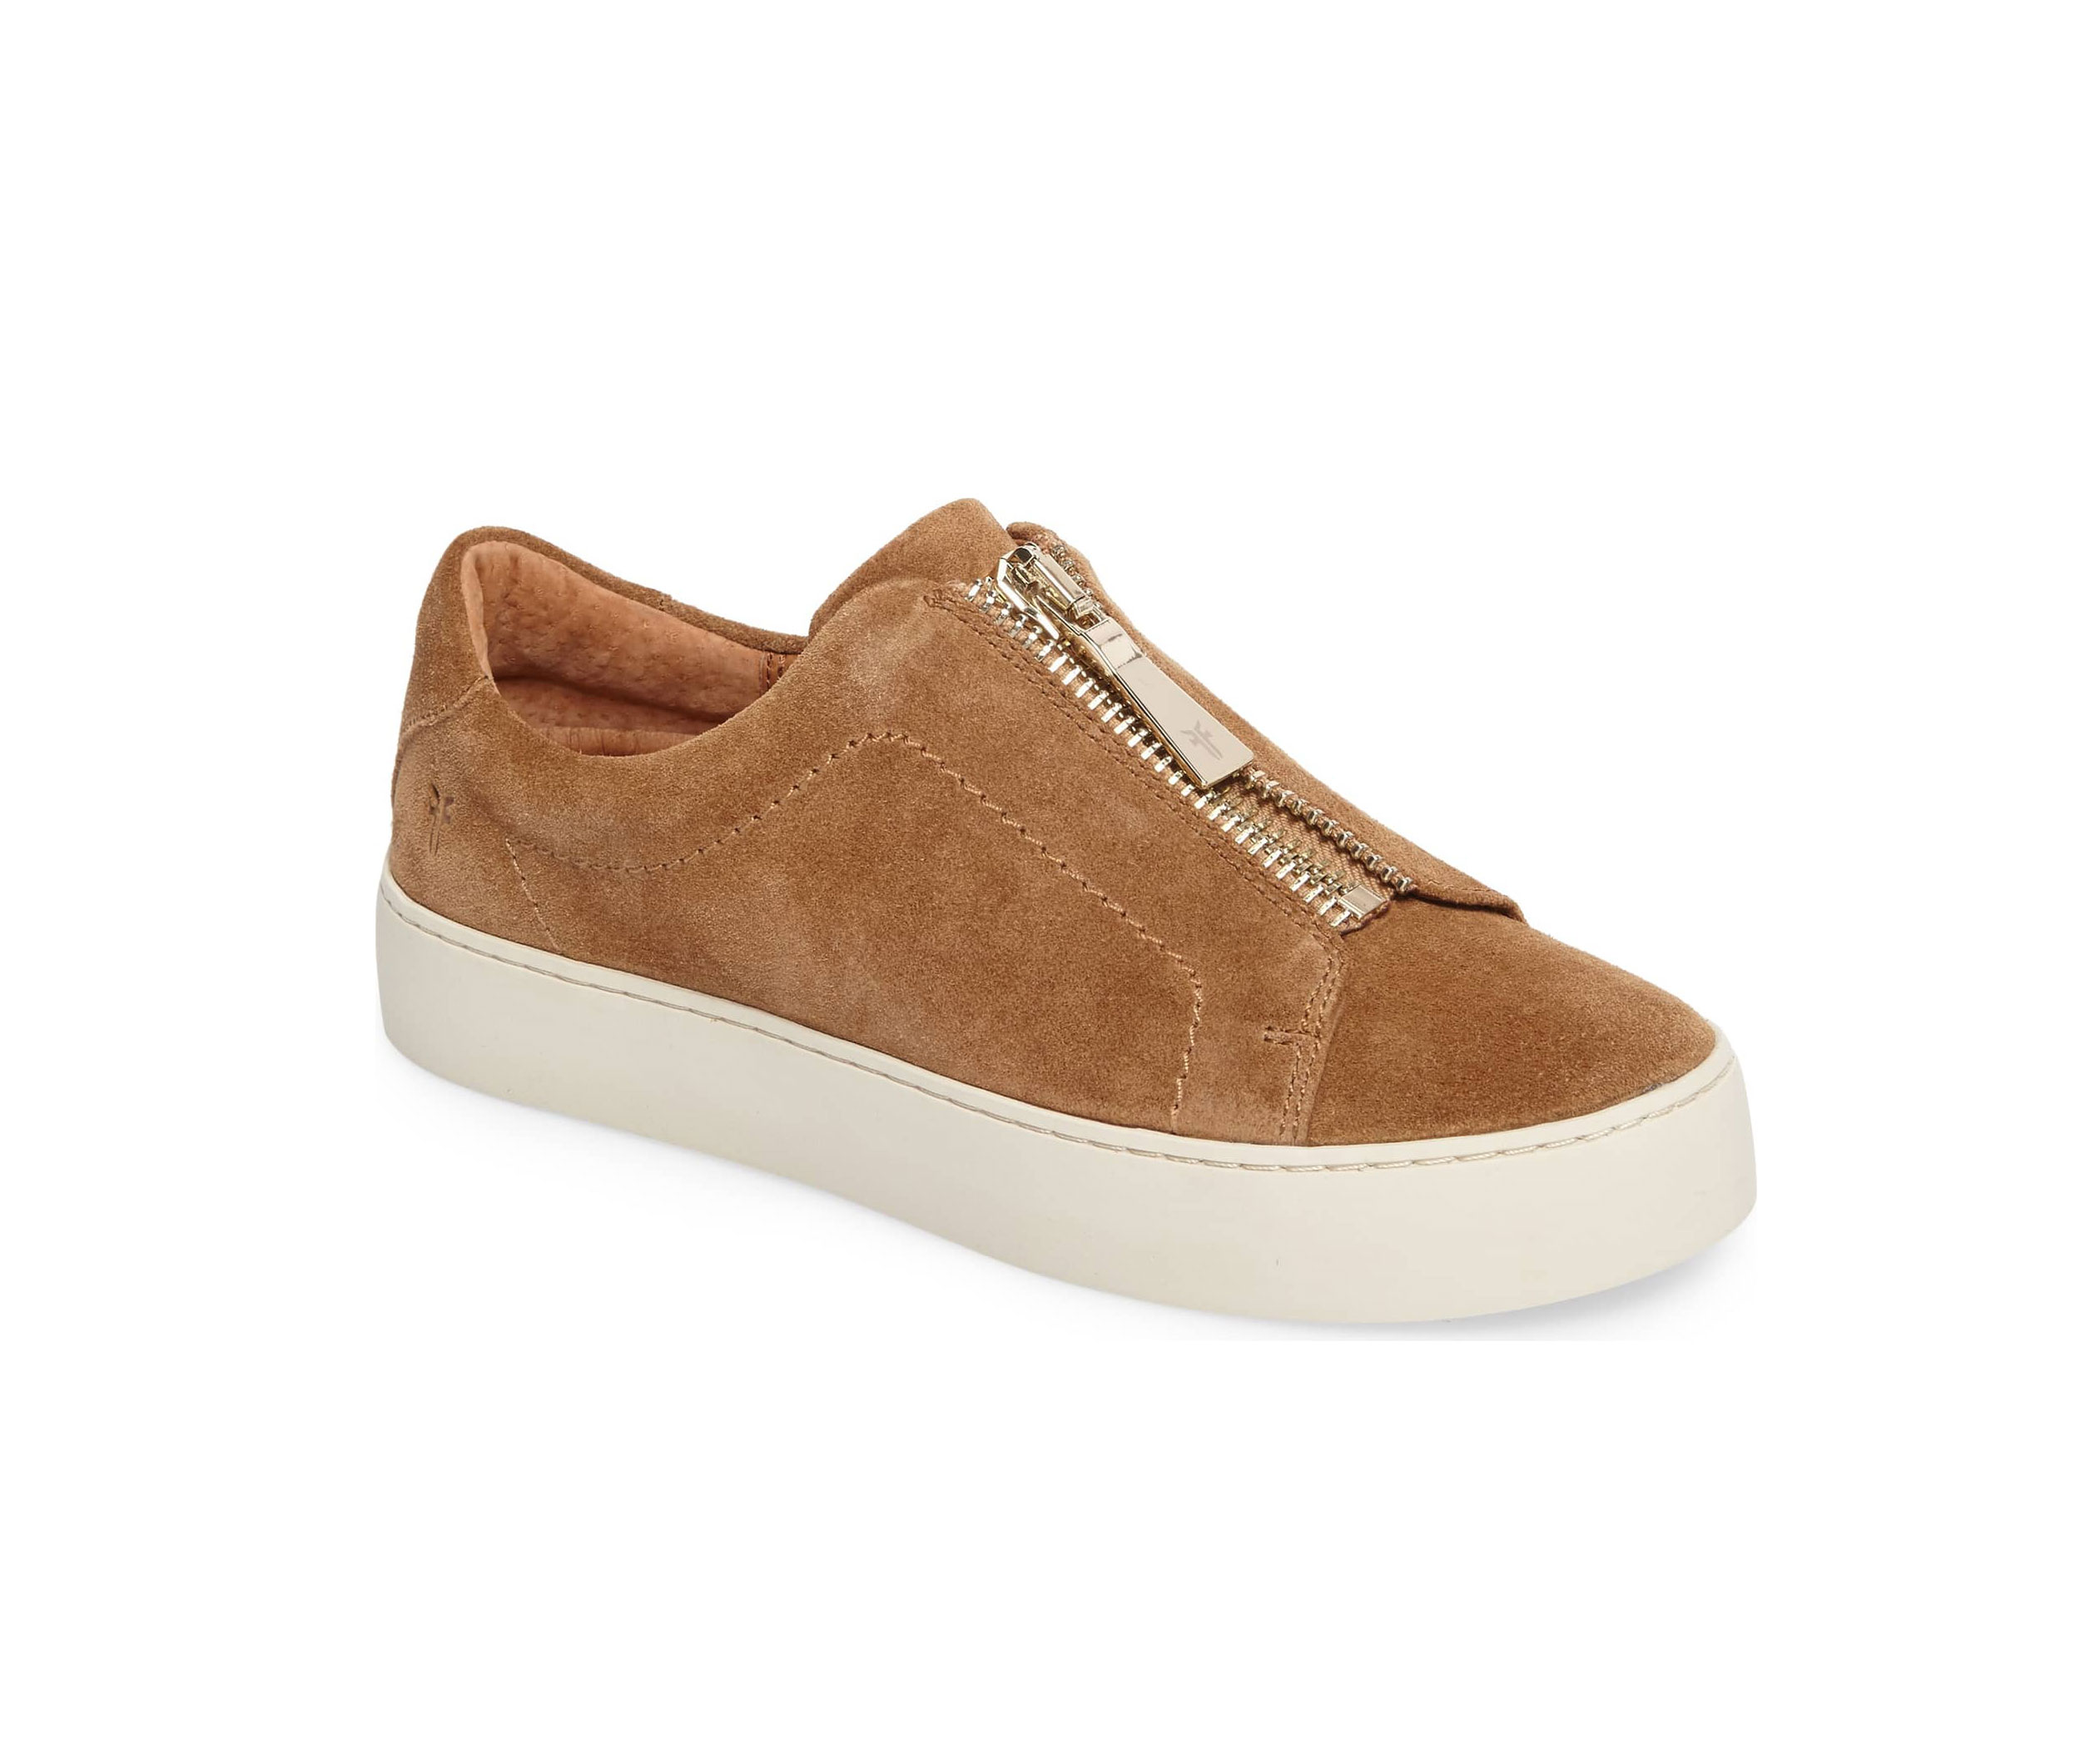 Https Shop With Us News J Crew Chambray Flash  Olivia Sneakers Ivory 38 Frye